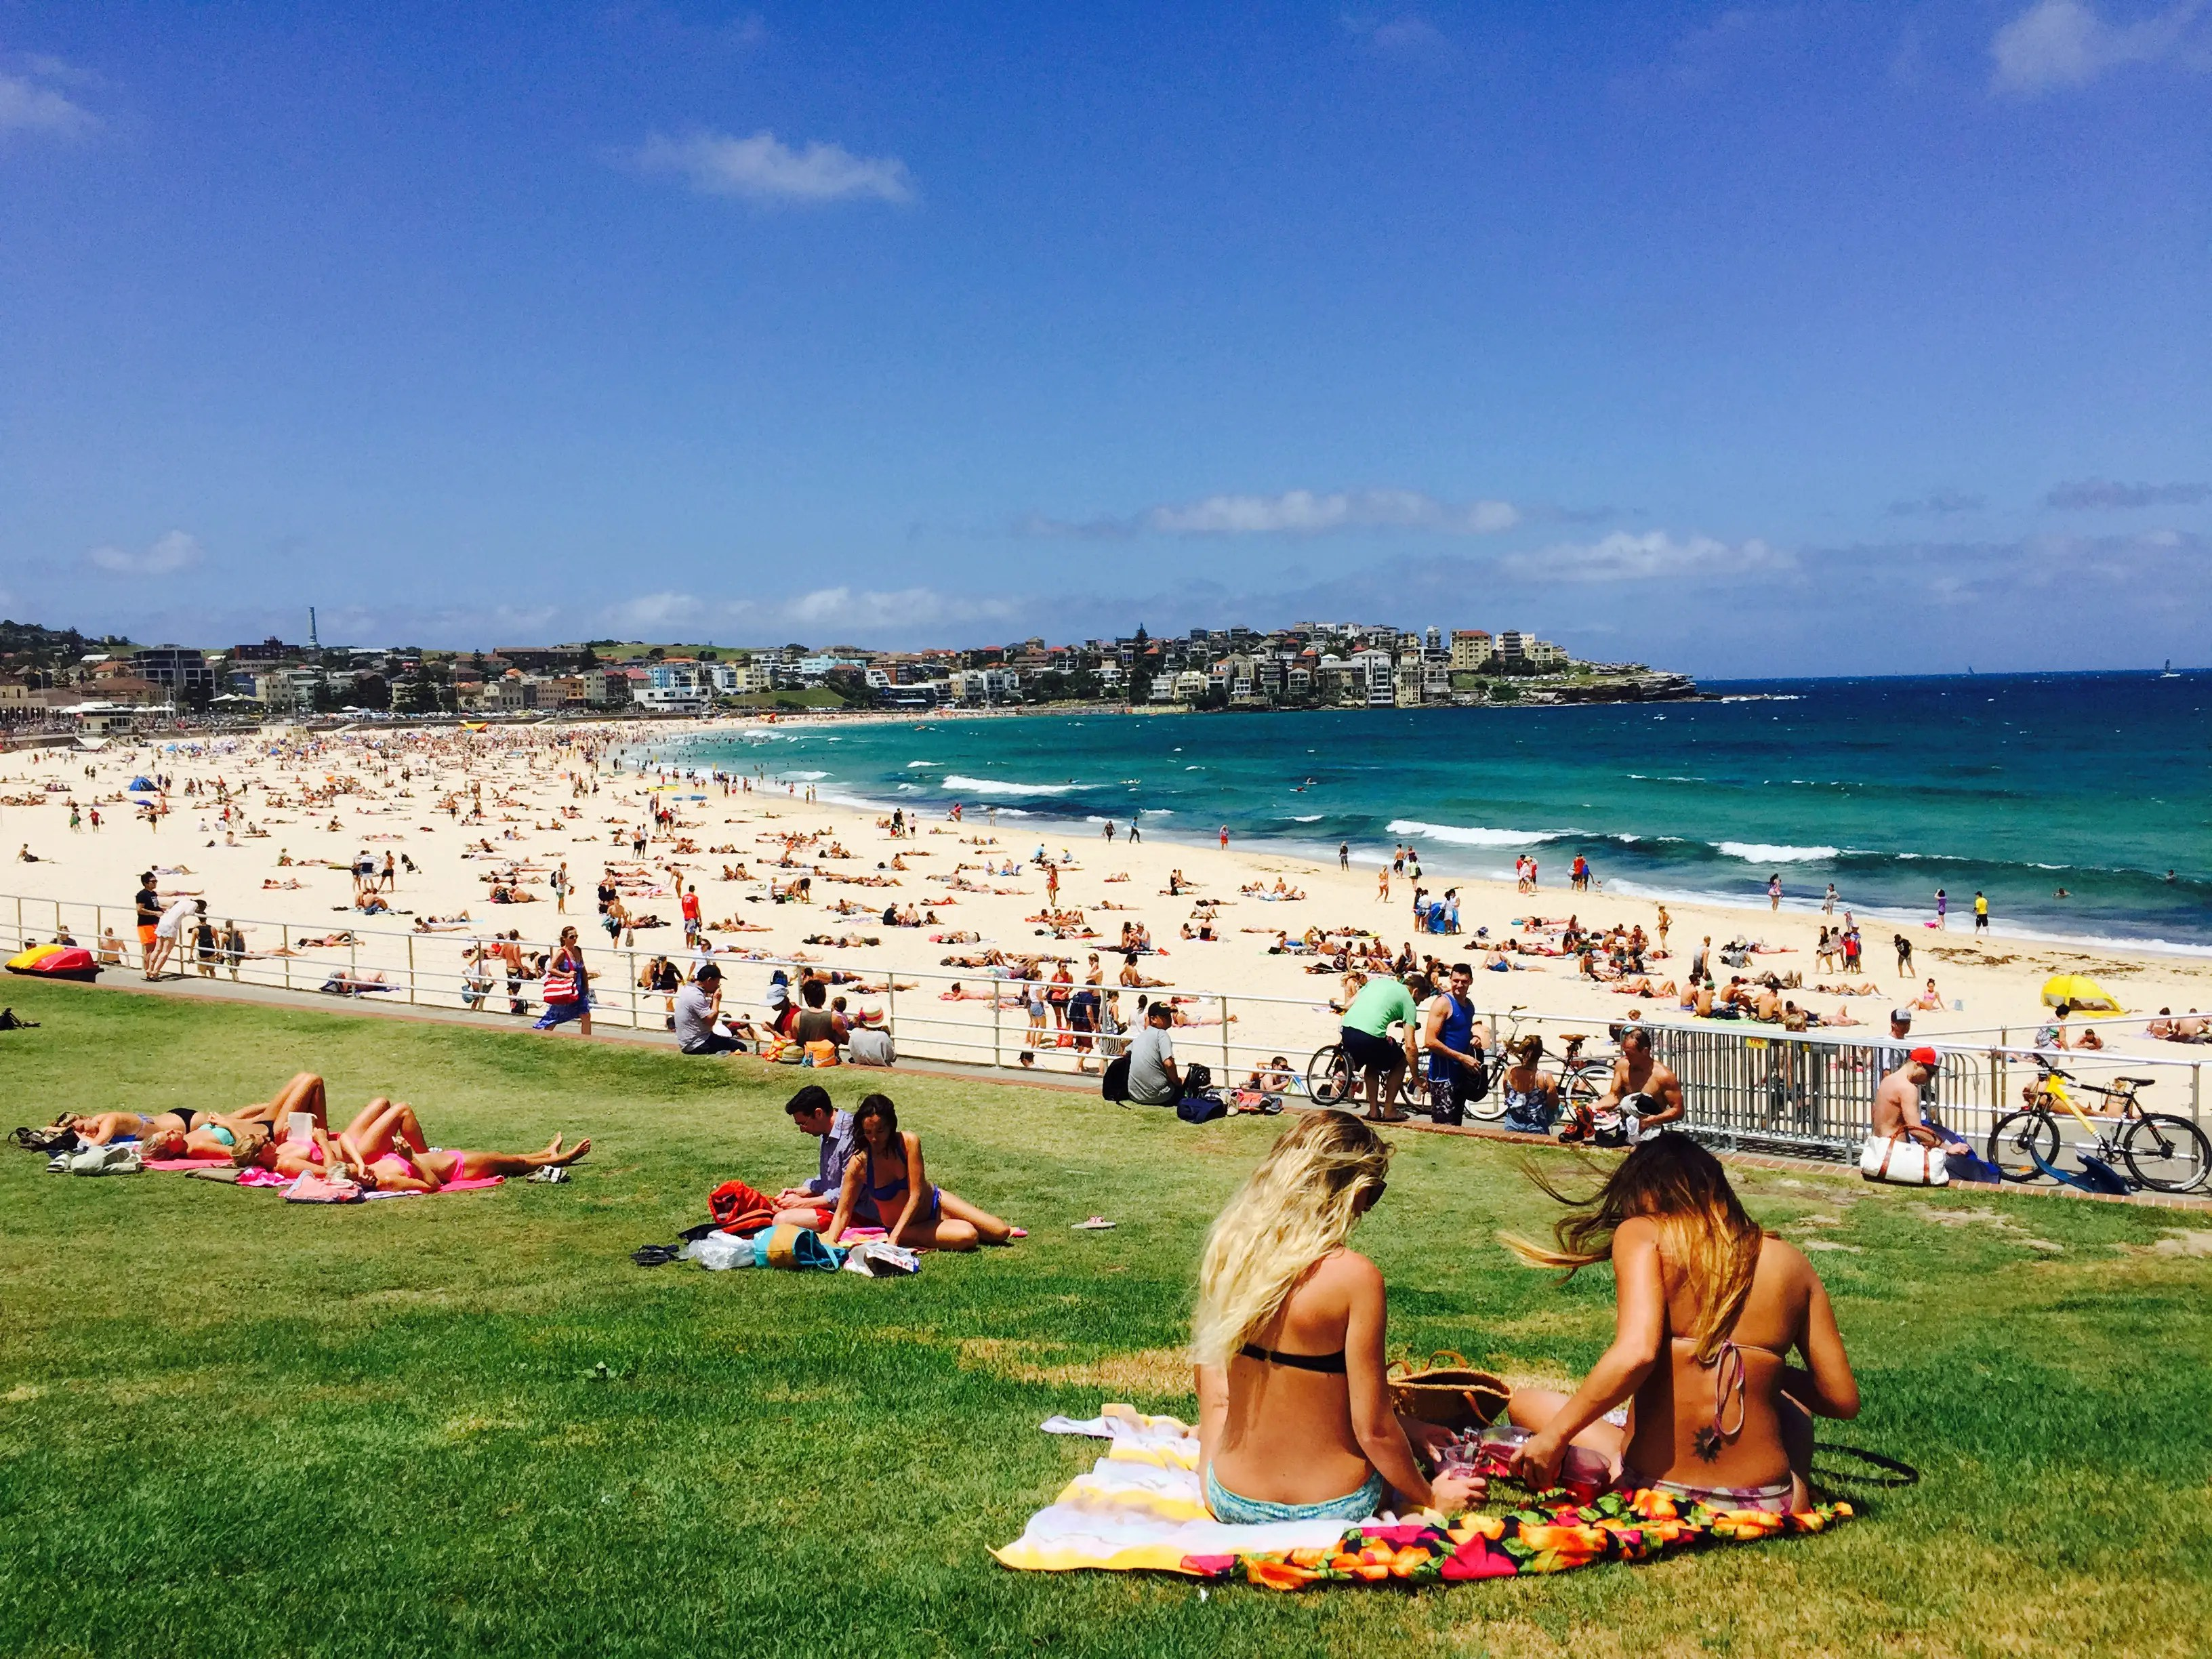 This photo was taken towards the end of spring in Sydney, Australia, when the people of the city head out to the beach.